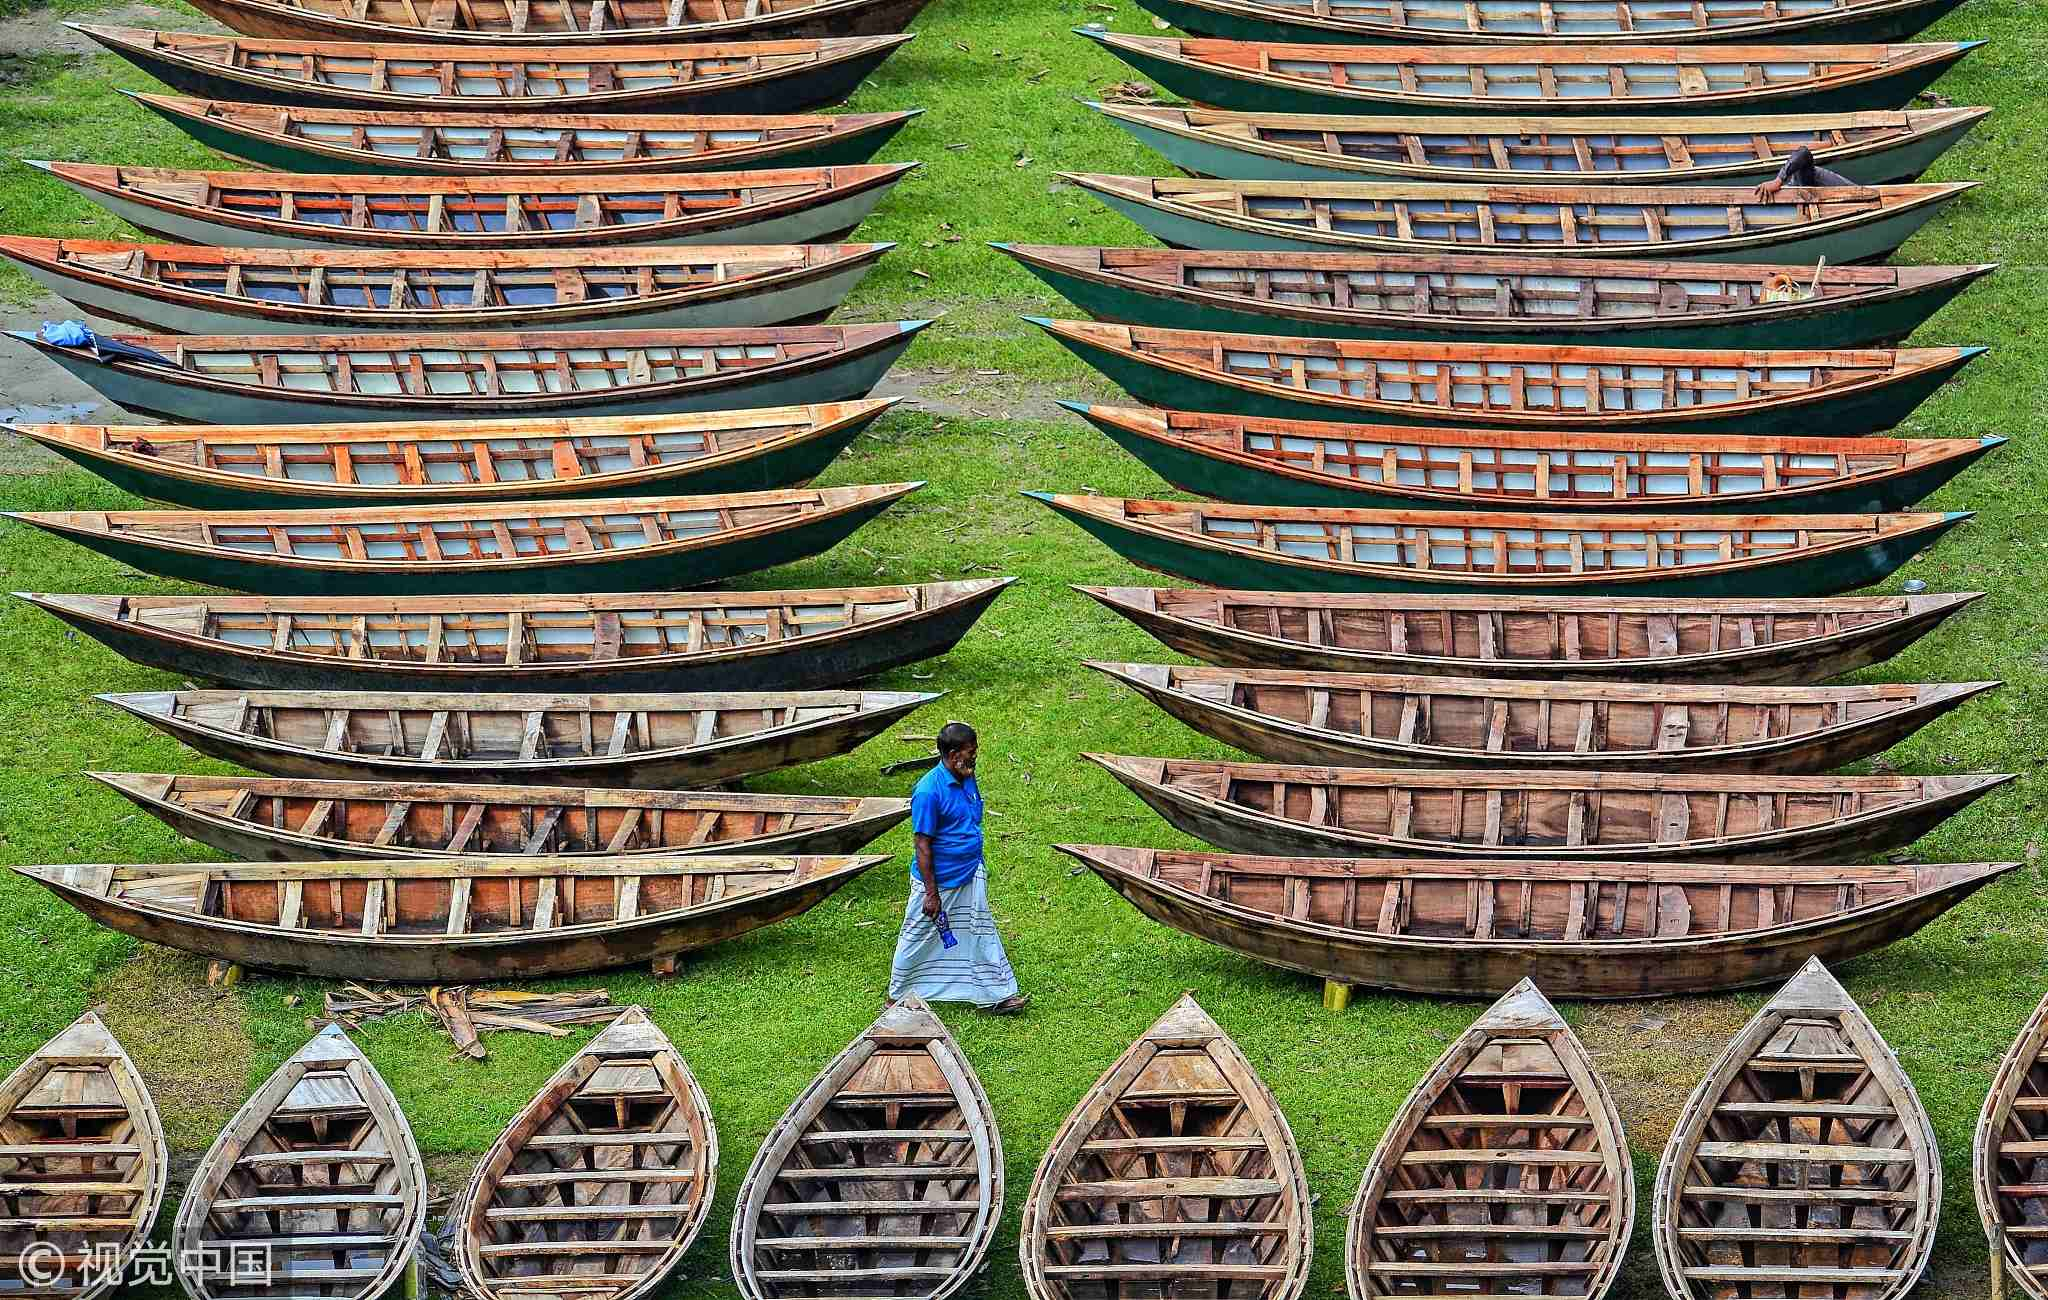 Hundreds of wooden boats are prepared for rainy season in Bangladesh